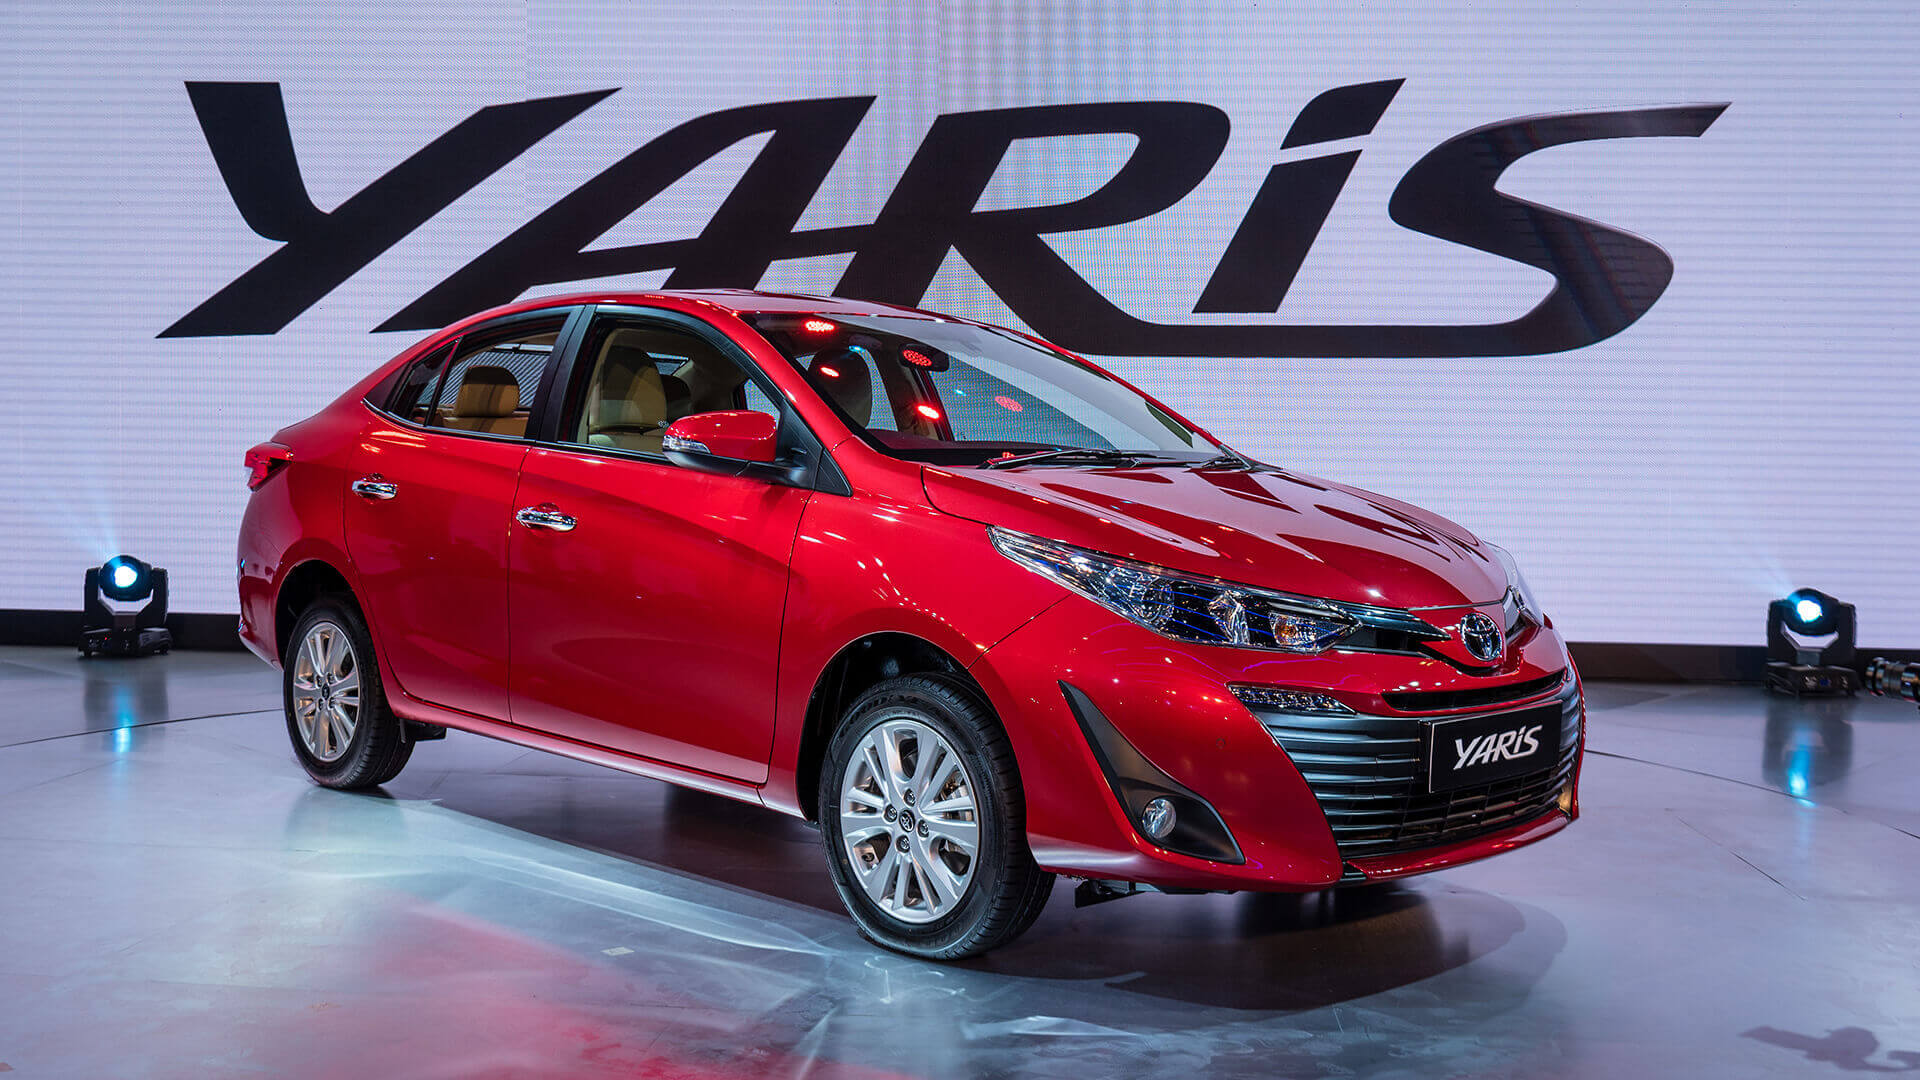 toyota yaris launched in india at rs 875 lakh autodevot